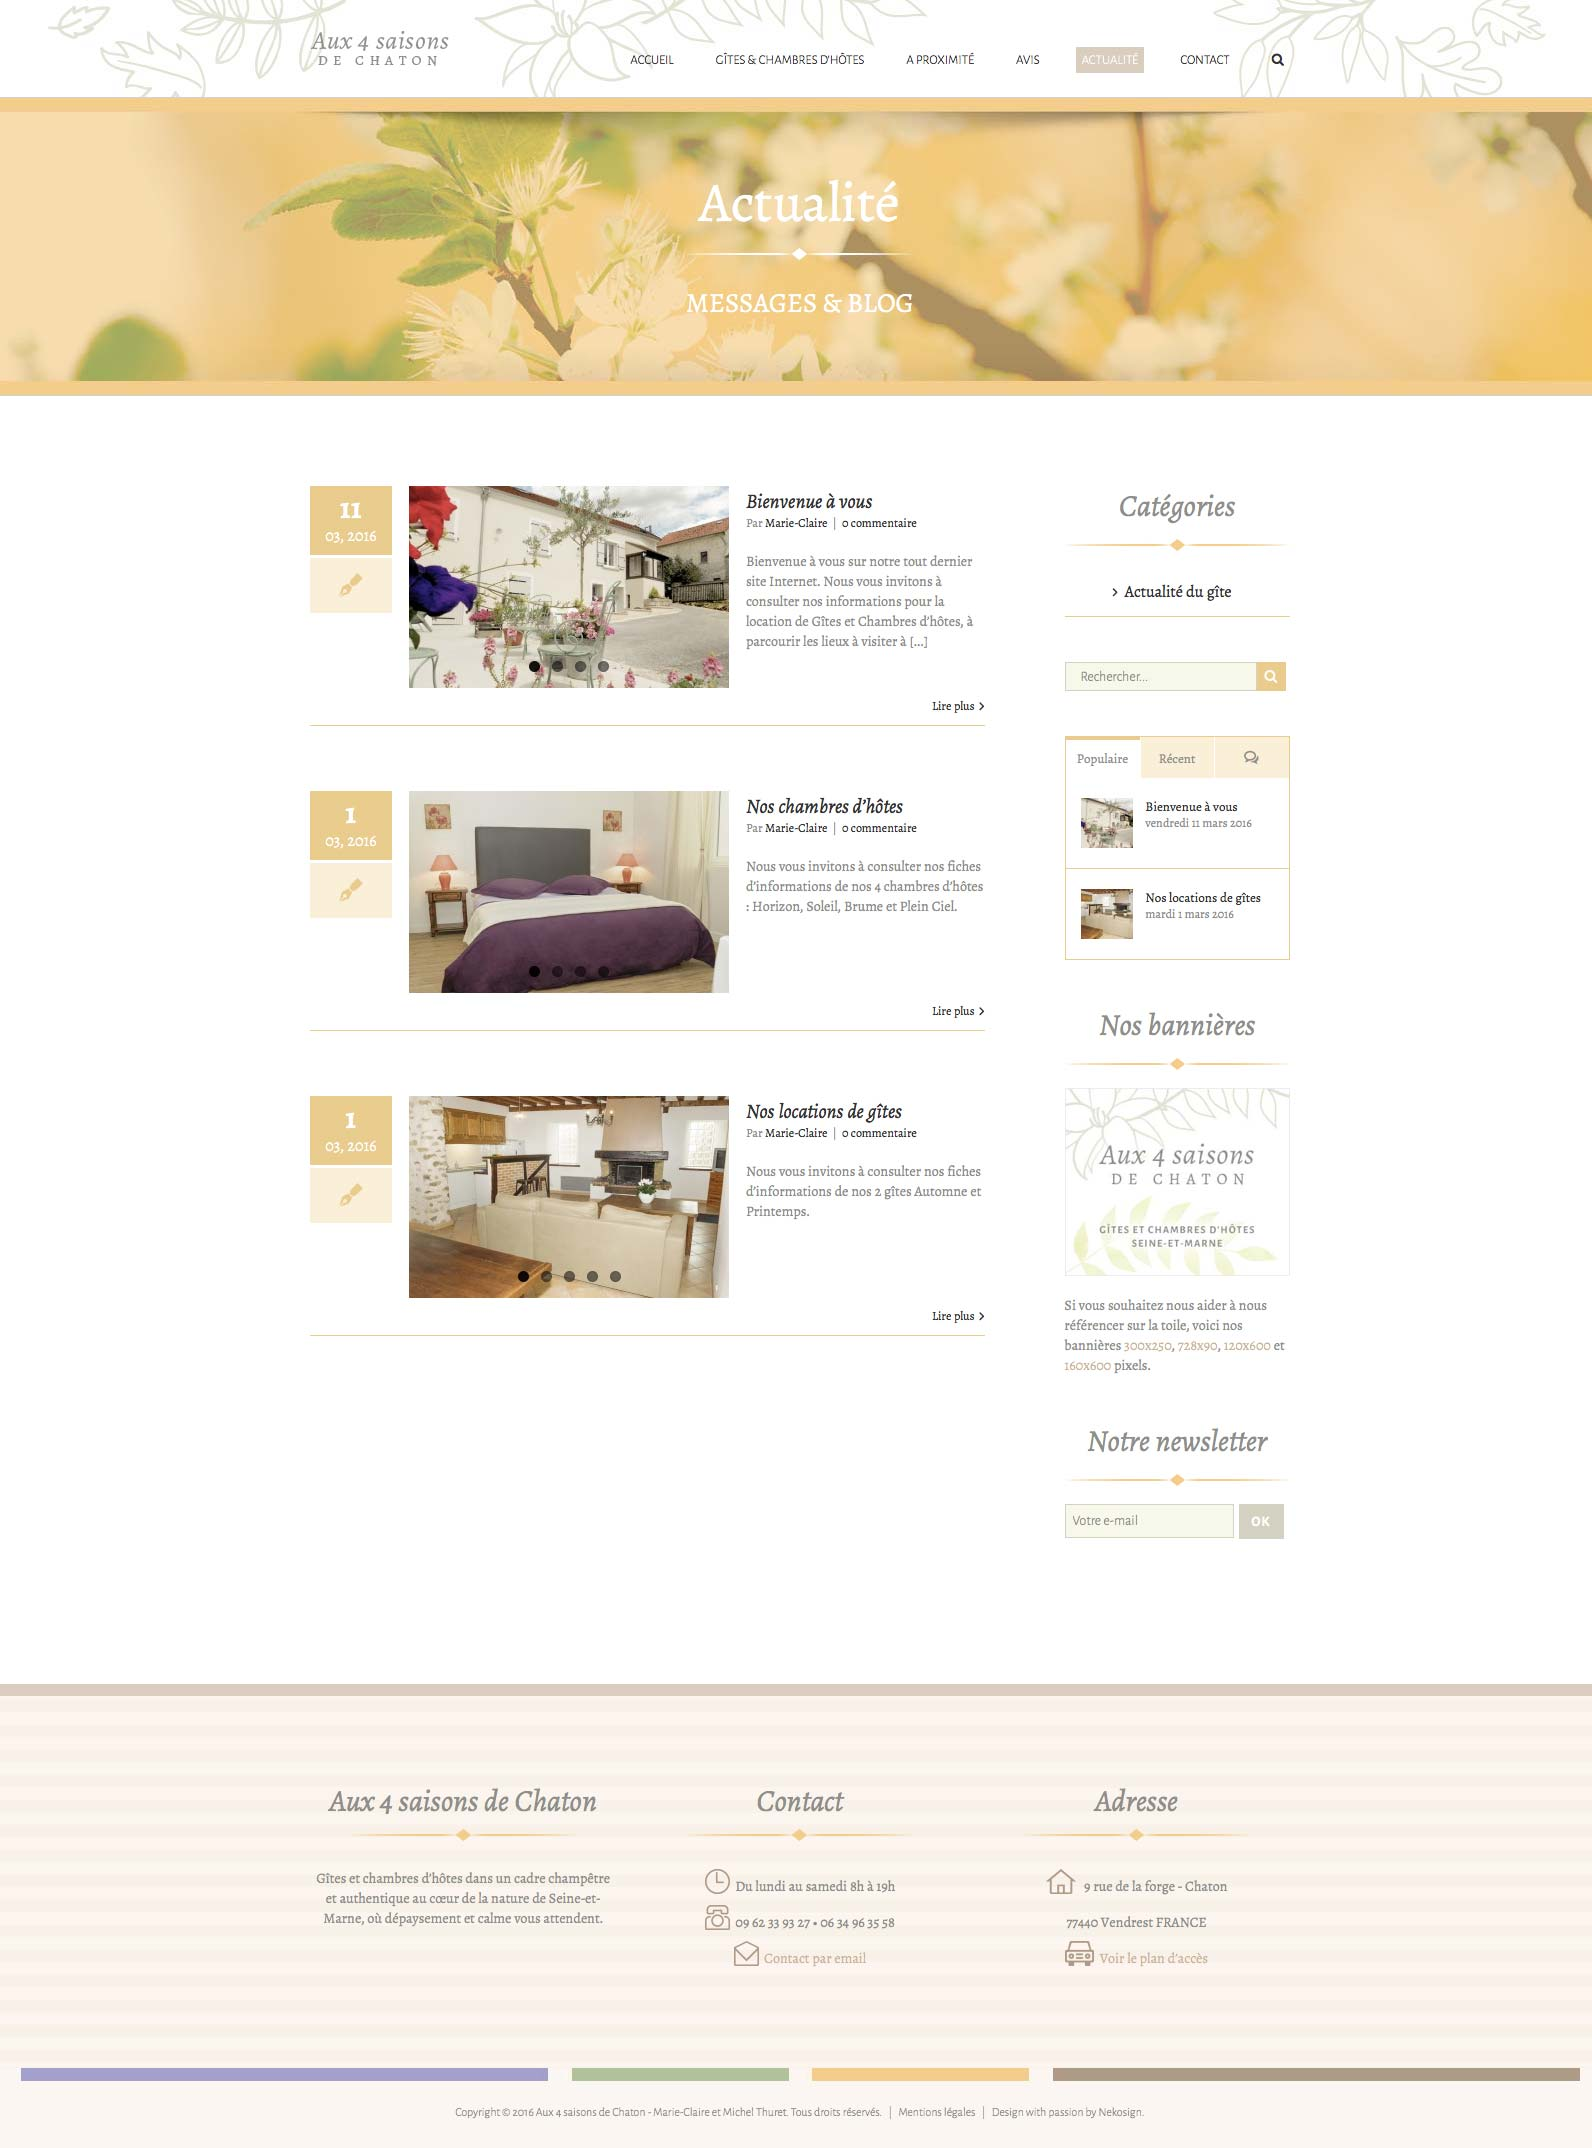 Aux 4 saisons website vitrine blog